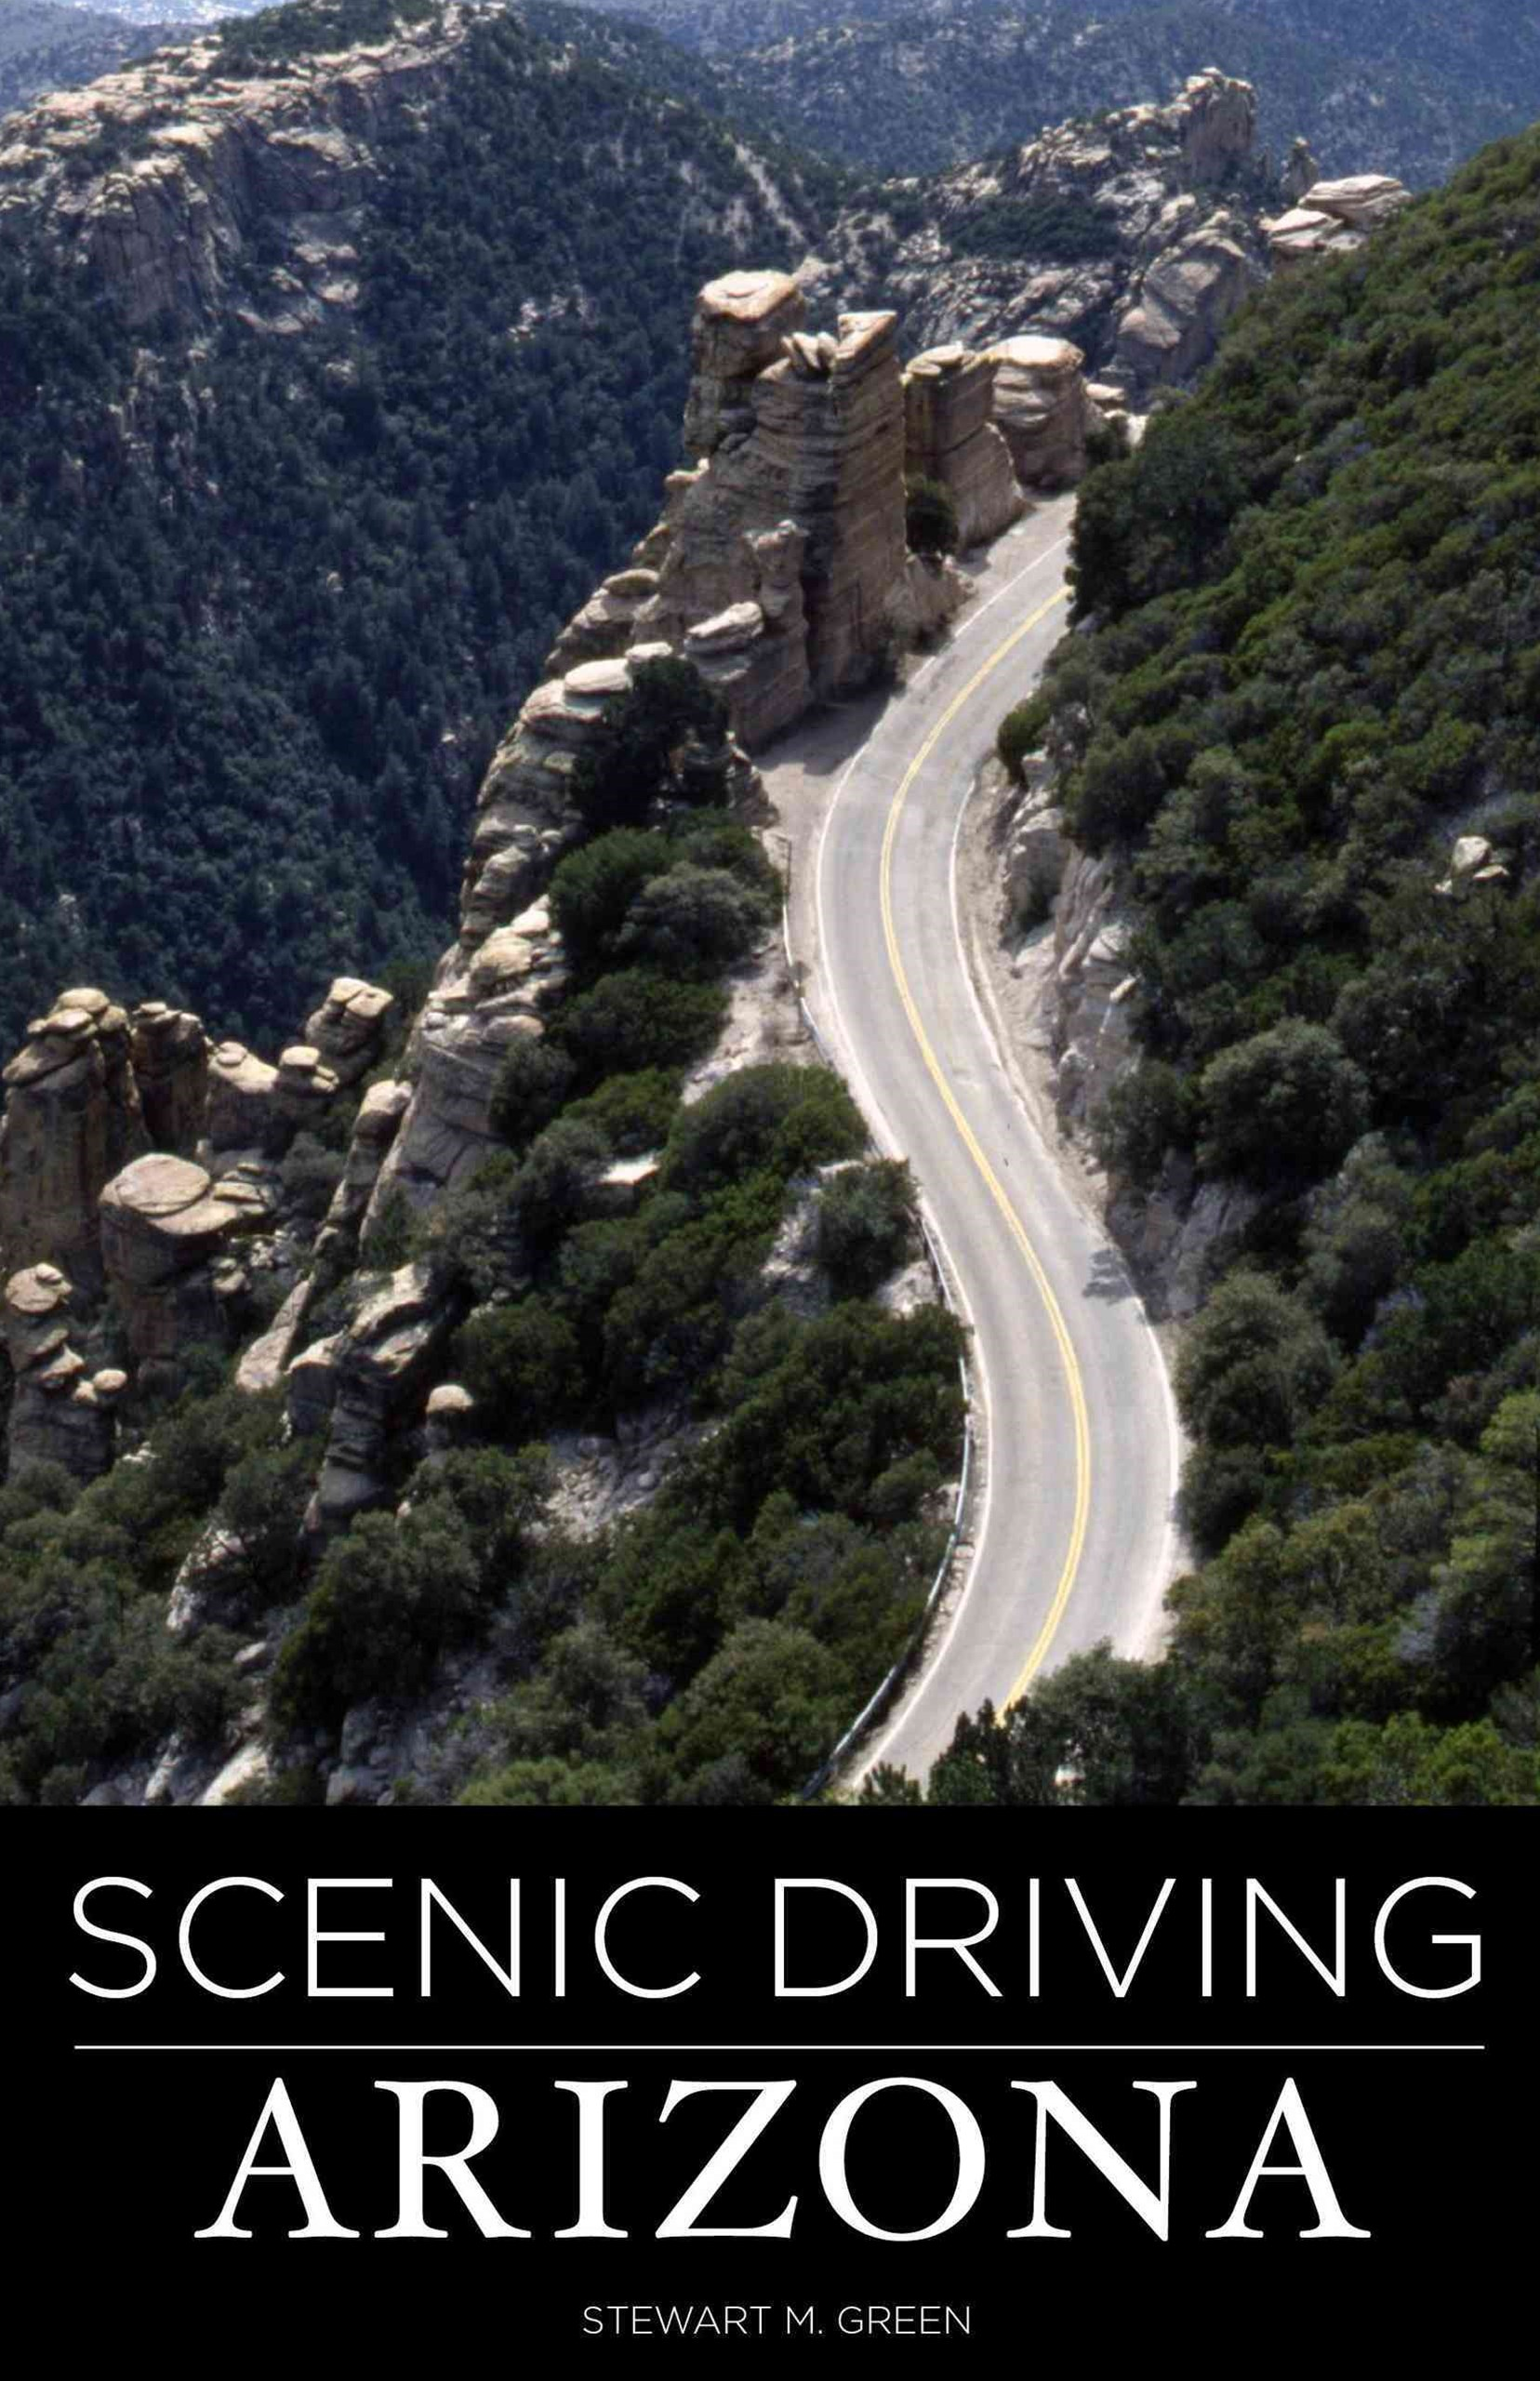 Arizona - Scenic Driving